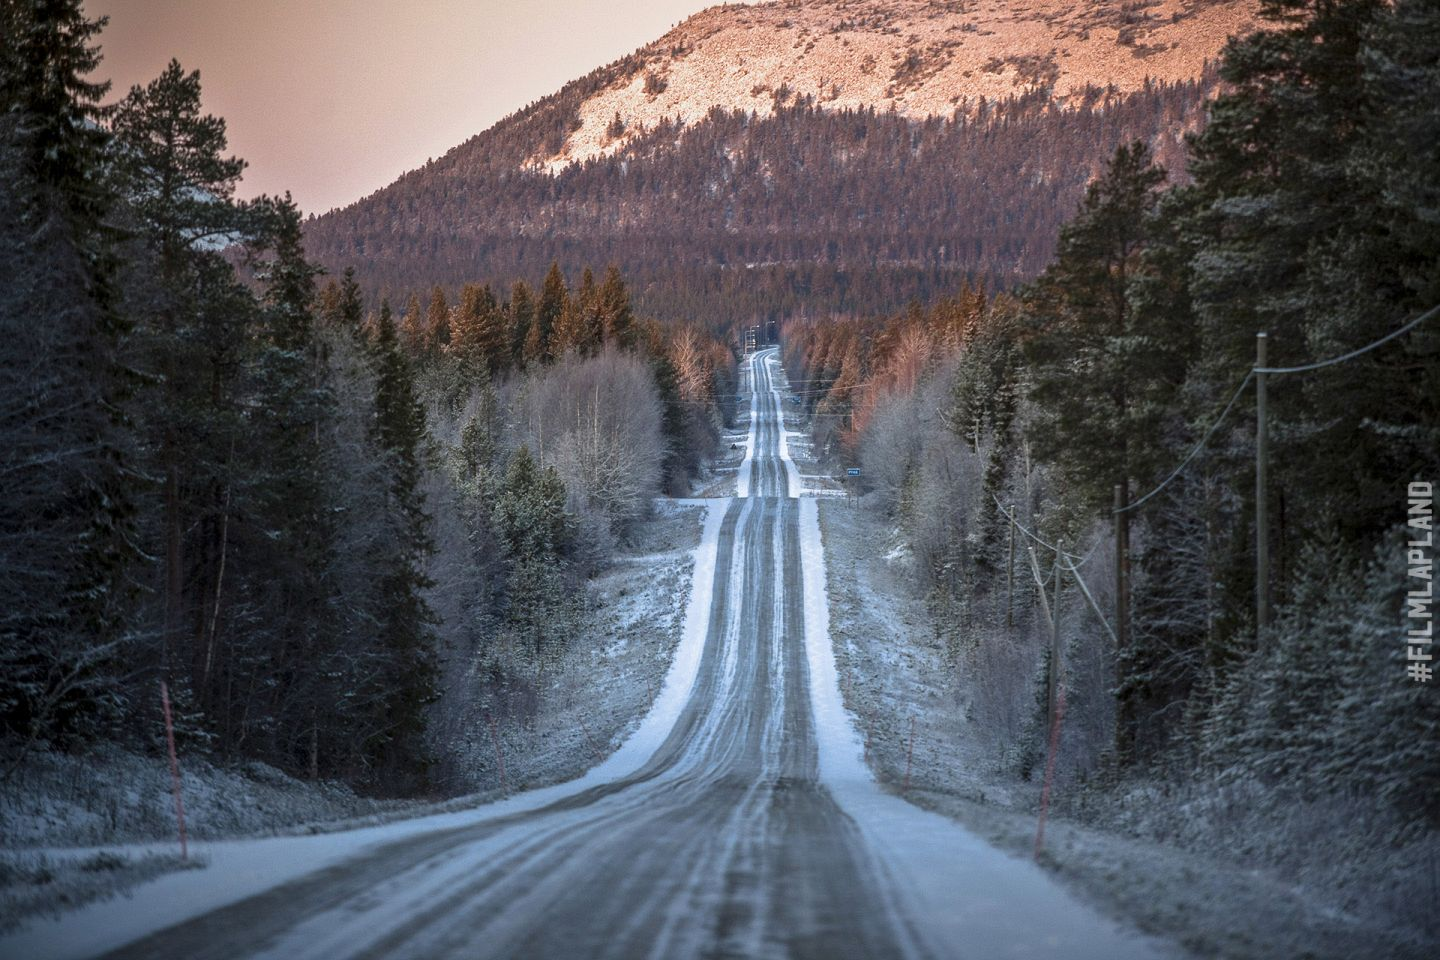 Snow dusted highway through the Arctic hills in Pelkosenniemi, Finland